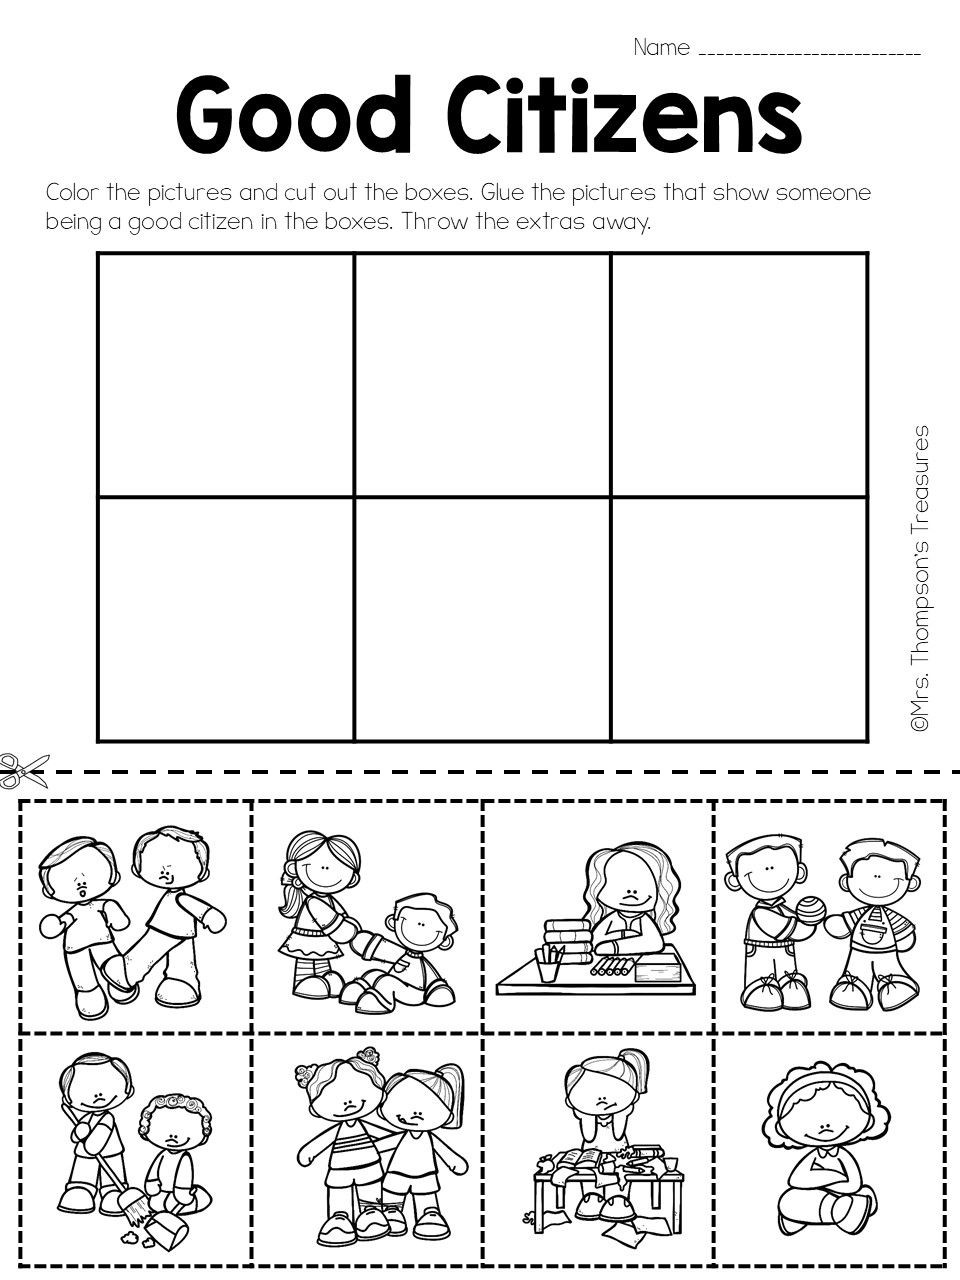 Social Studies Worksheet 1st Grade social Stu S Being A Good Citizen